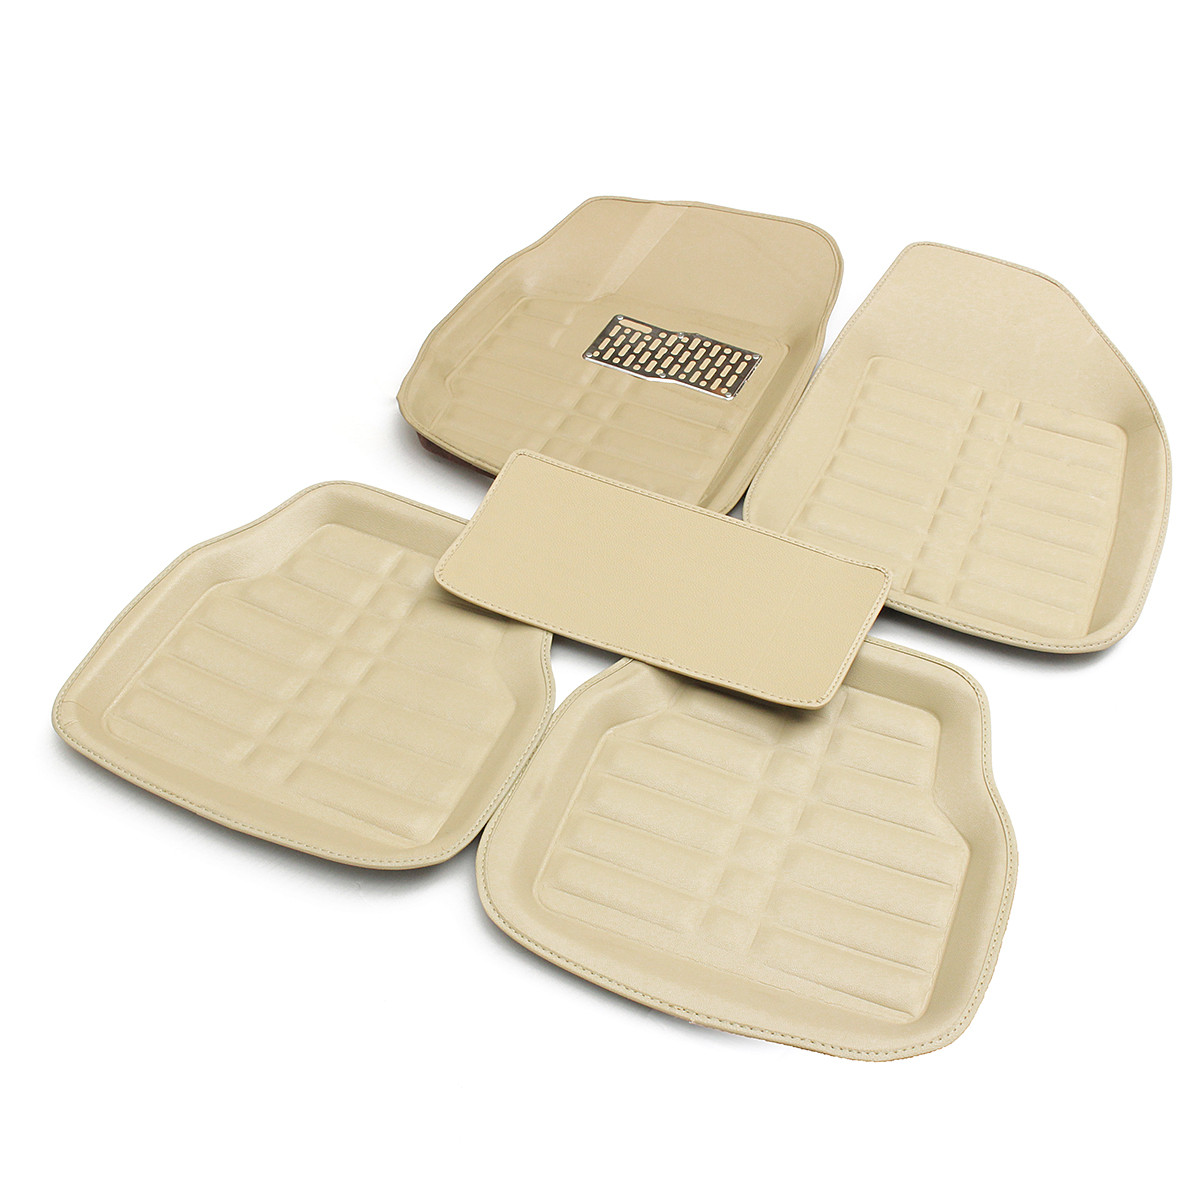 5Pcs Beige PU Leather Universal Car Floor Leather Front Rear Liner Easy Clean Waterproof Mat Auto Anti Slip Carpet All Season 5 seats 1 set customs car floor mat leather waterproof front